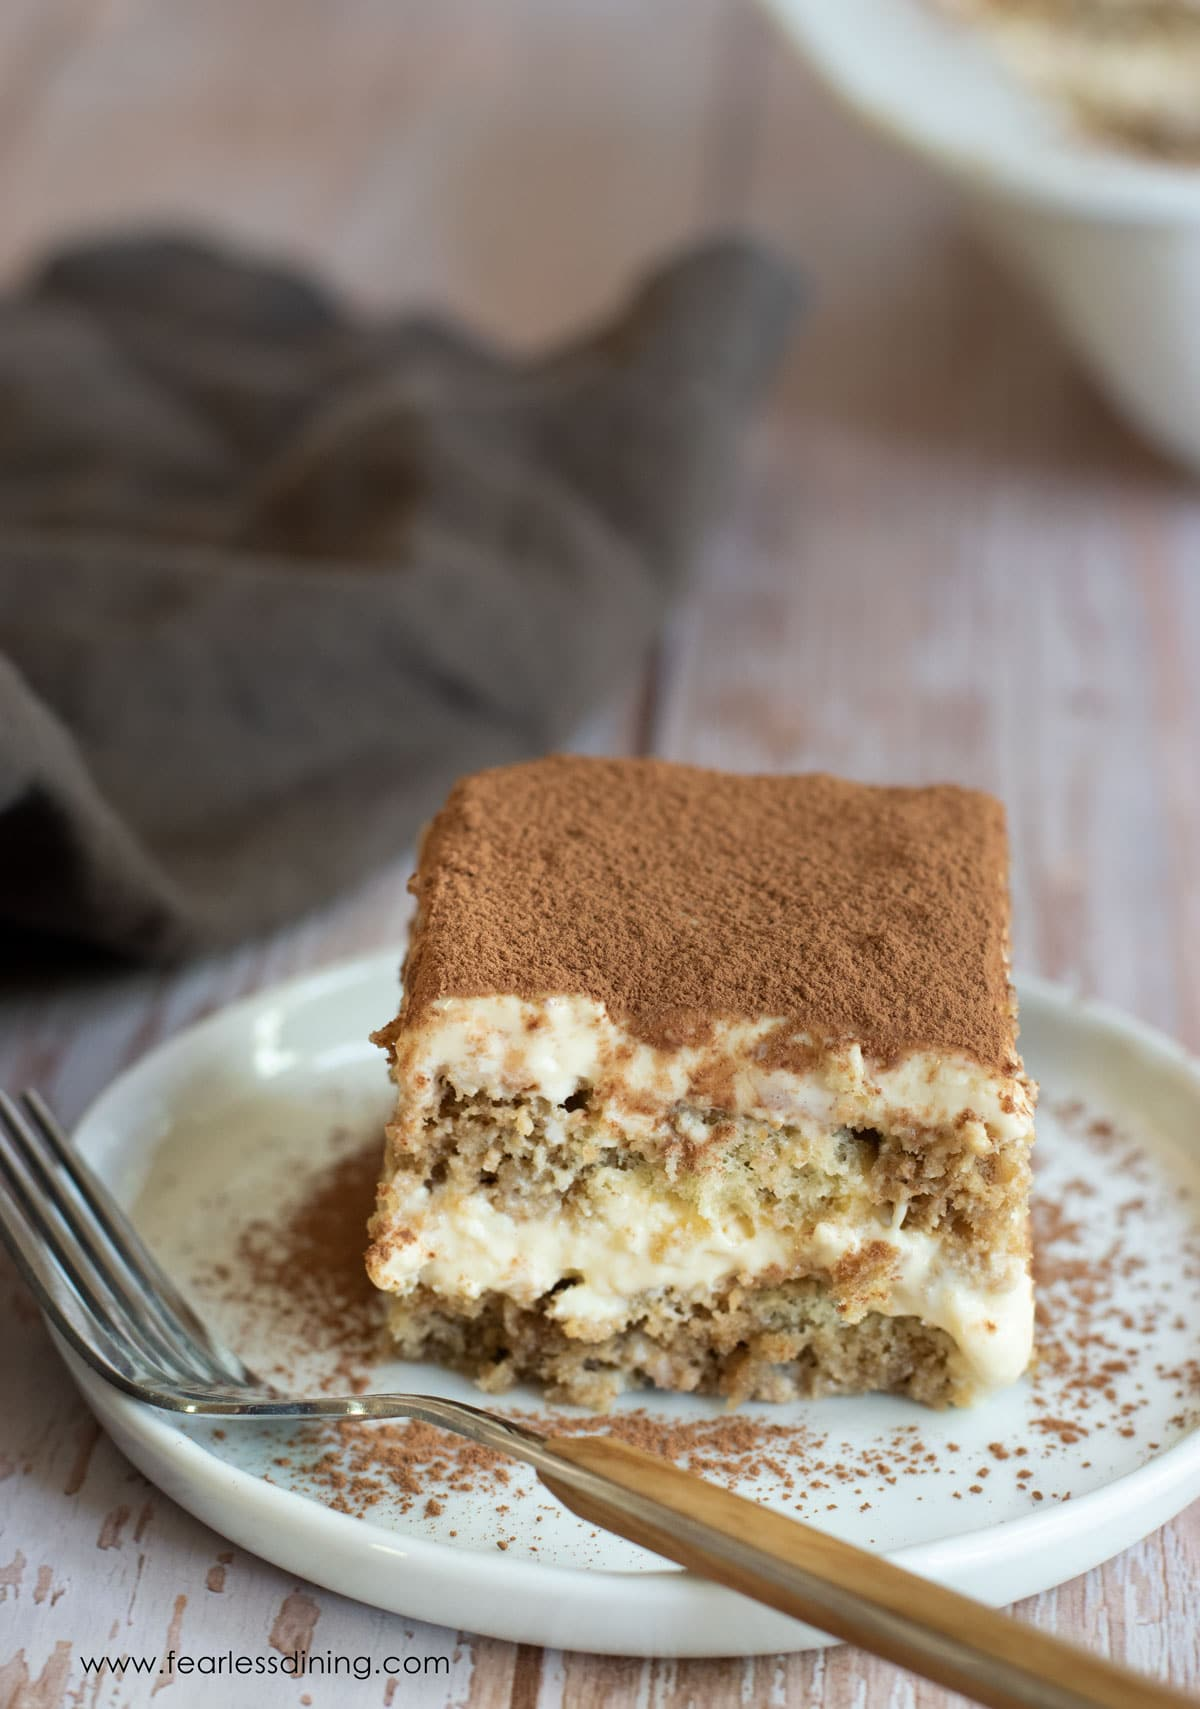 a piece of tiramisu on a plate with a brown fork